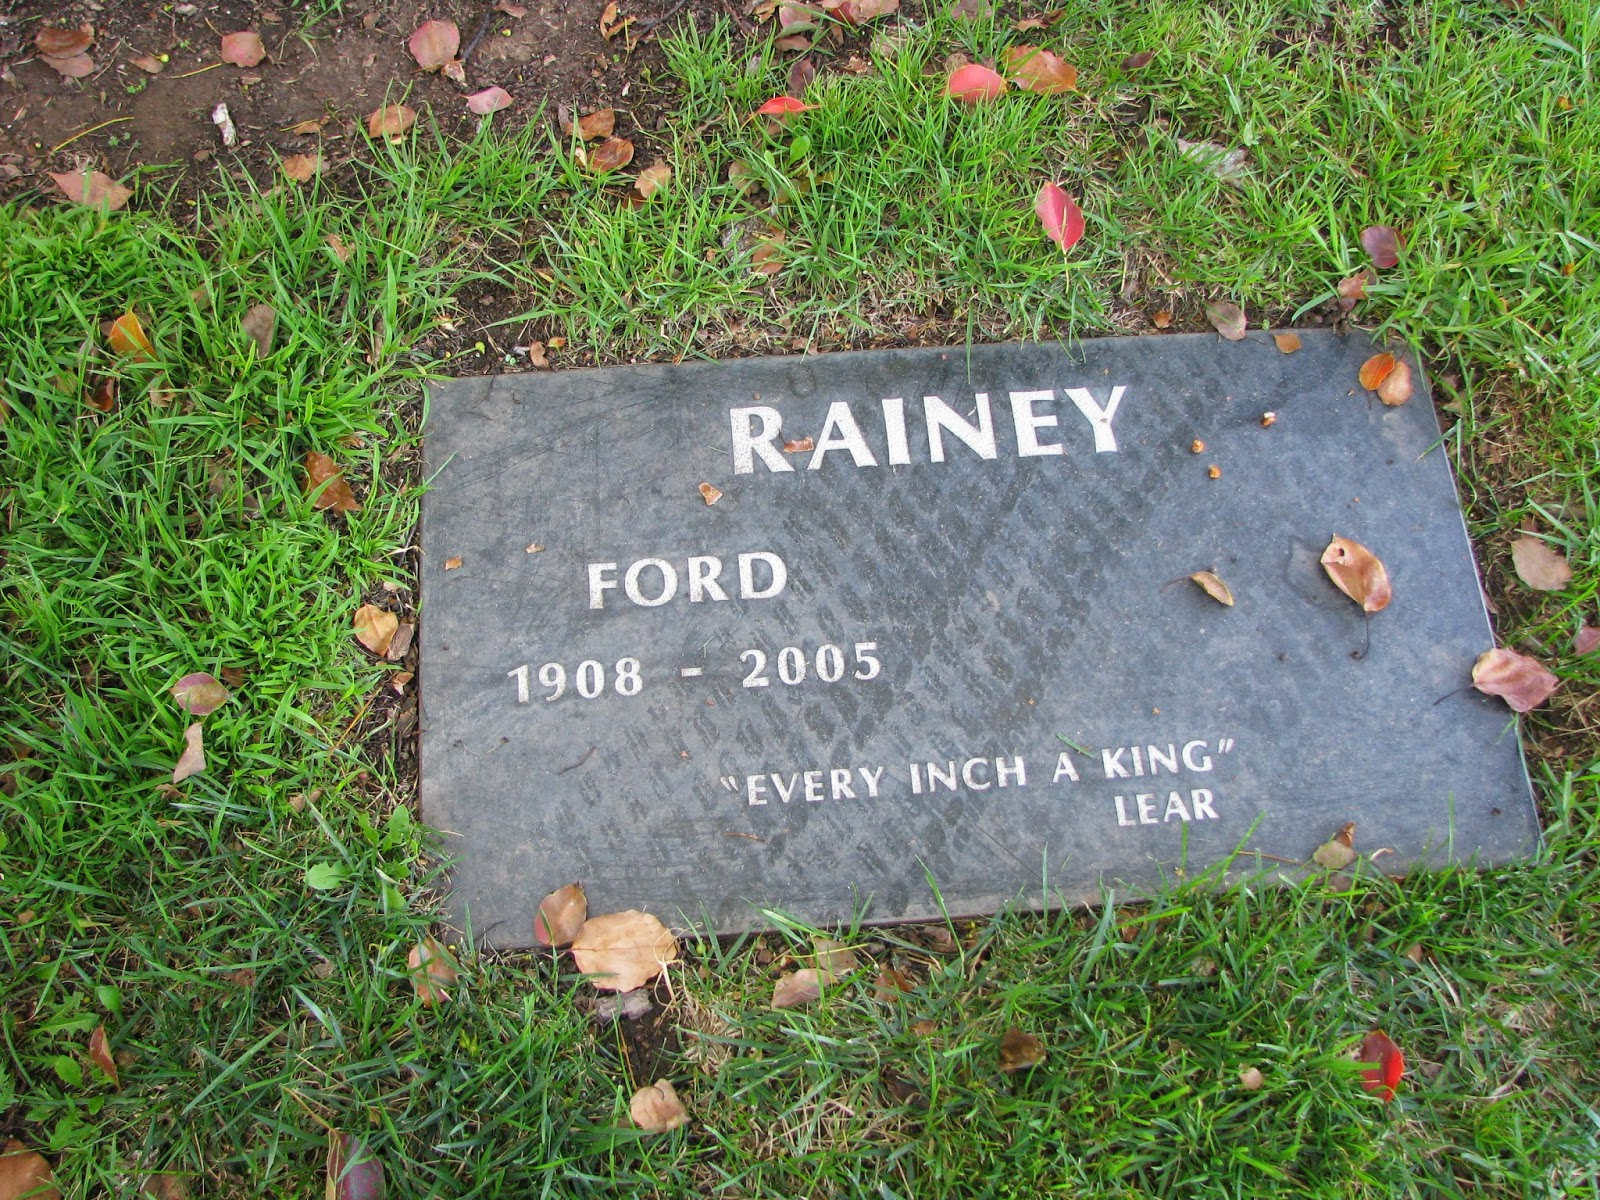 The late Ford Rainey (Dr. Mixter)